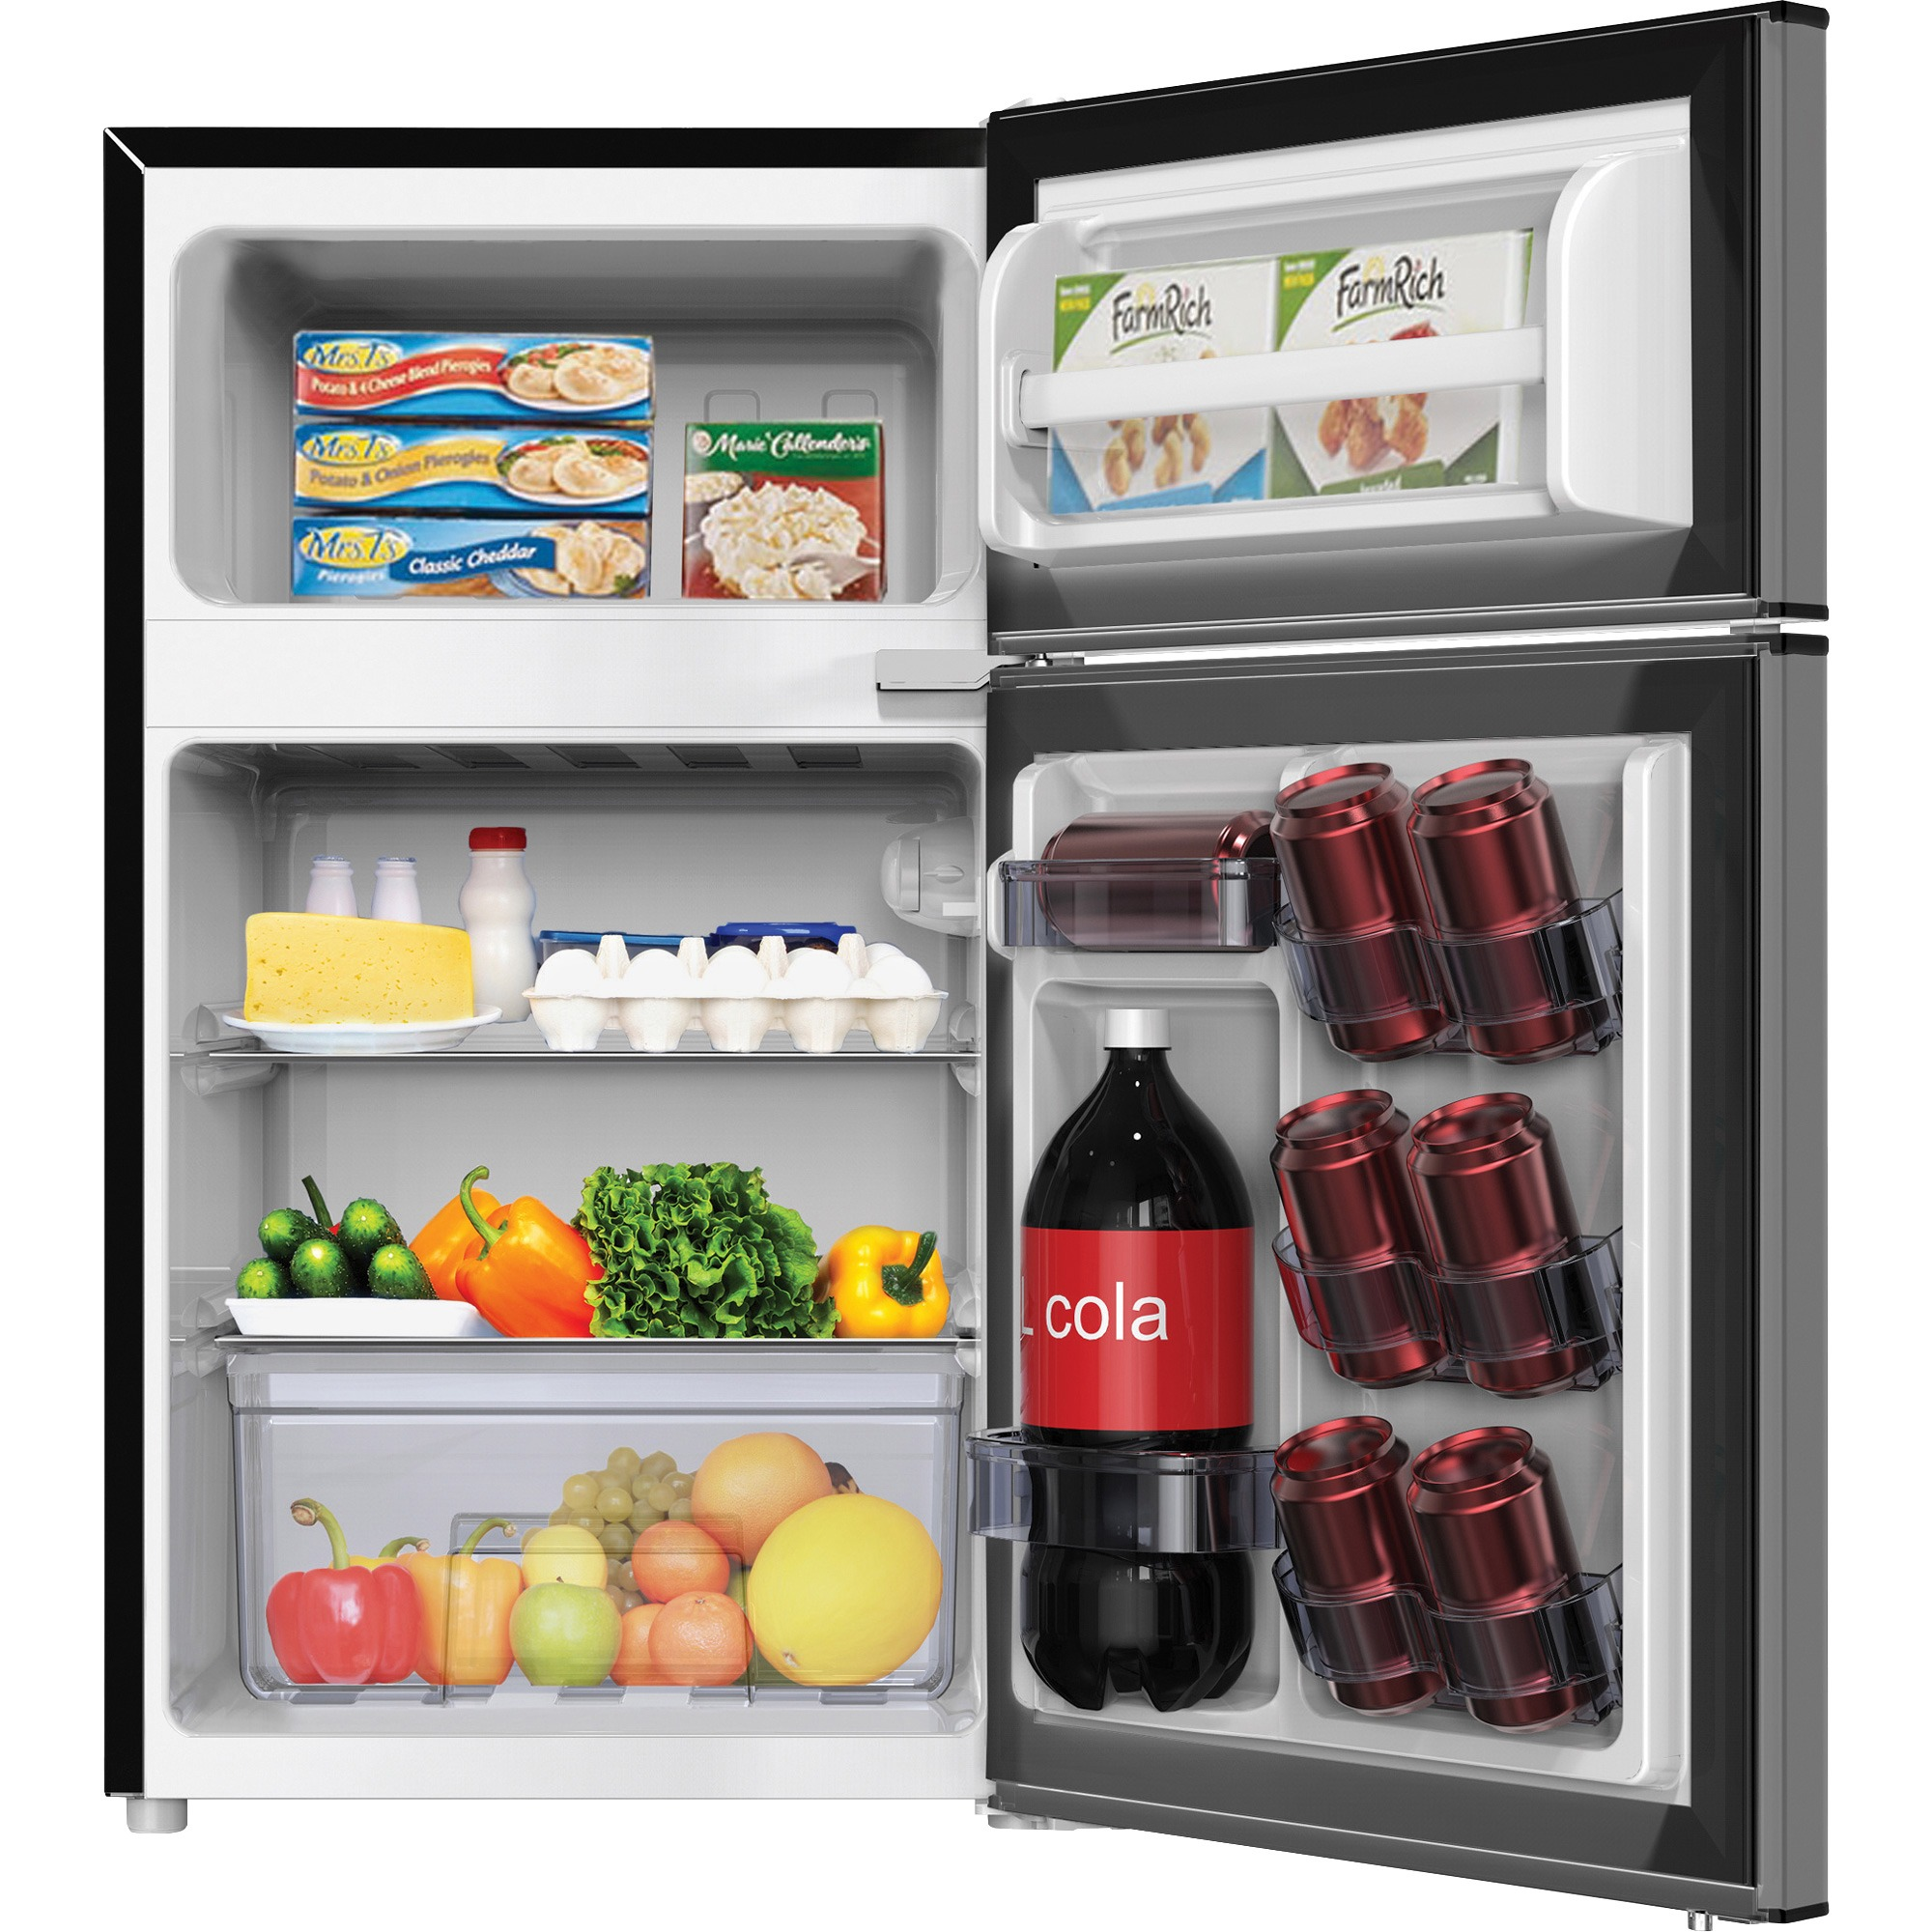 Avanti RA31B3S 3.1 Cu Ft Two Door Compact Refrigerator, Black Cabinet with Stainless Steel Door